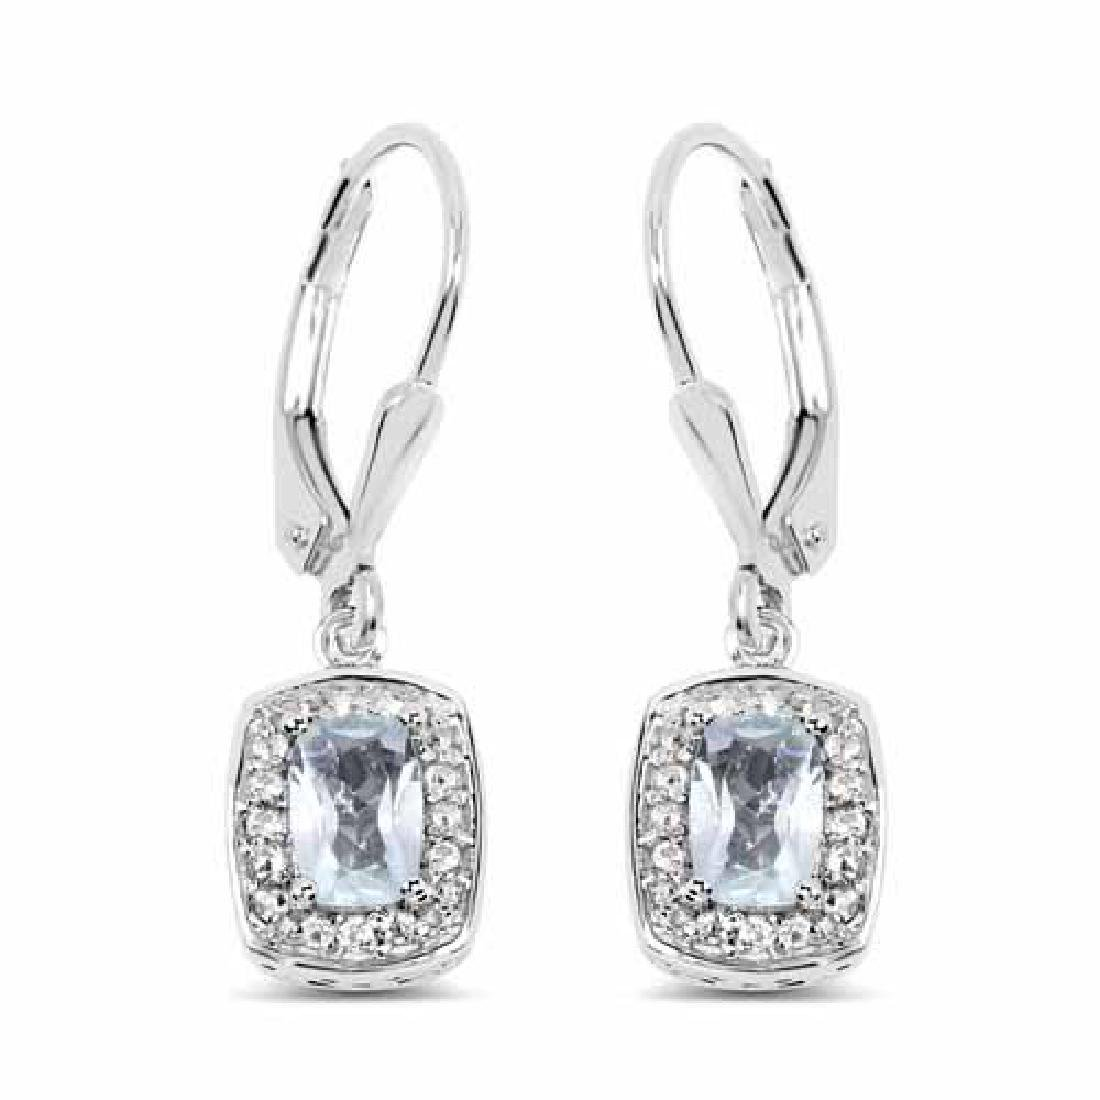 1.49 Carat Genuine Blue Topaz and White Topaz .925 Ster